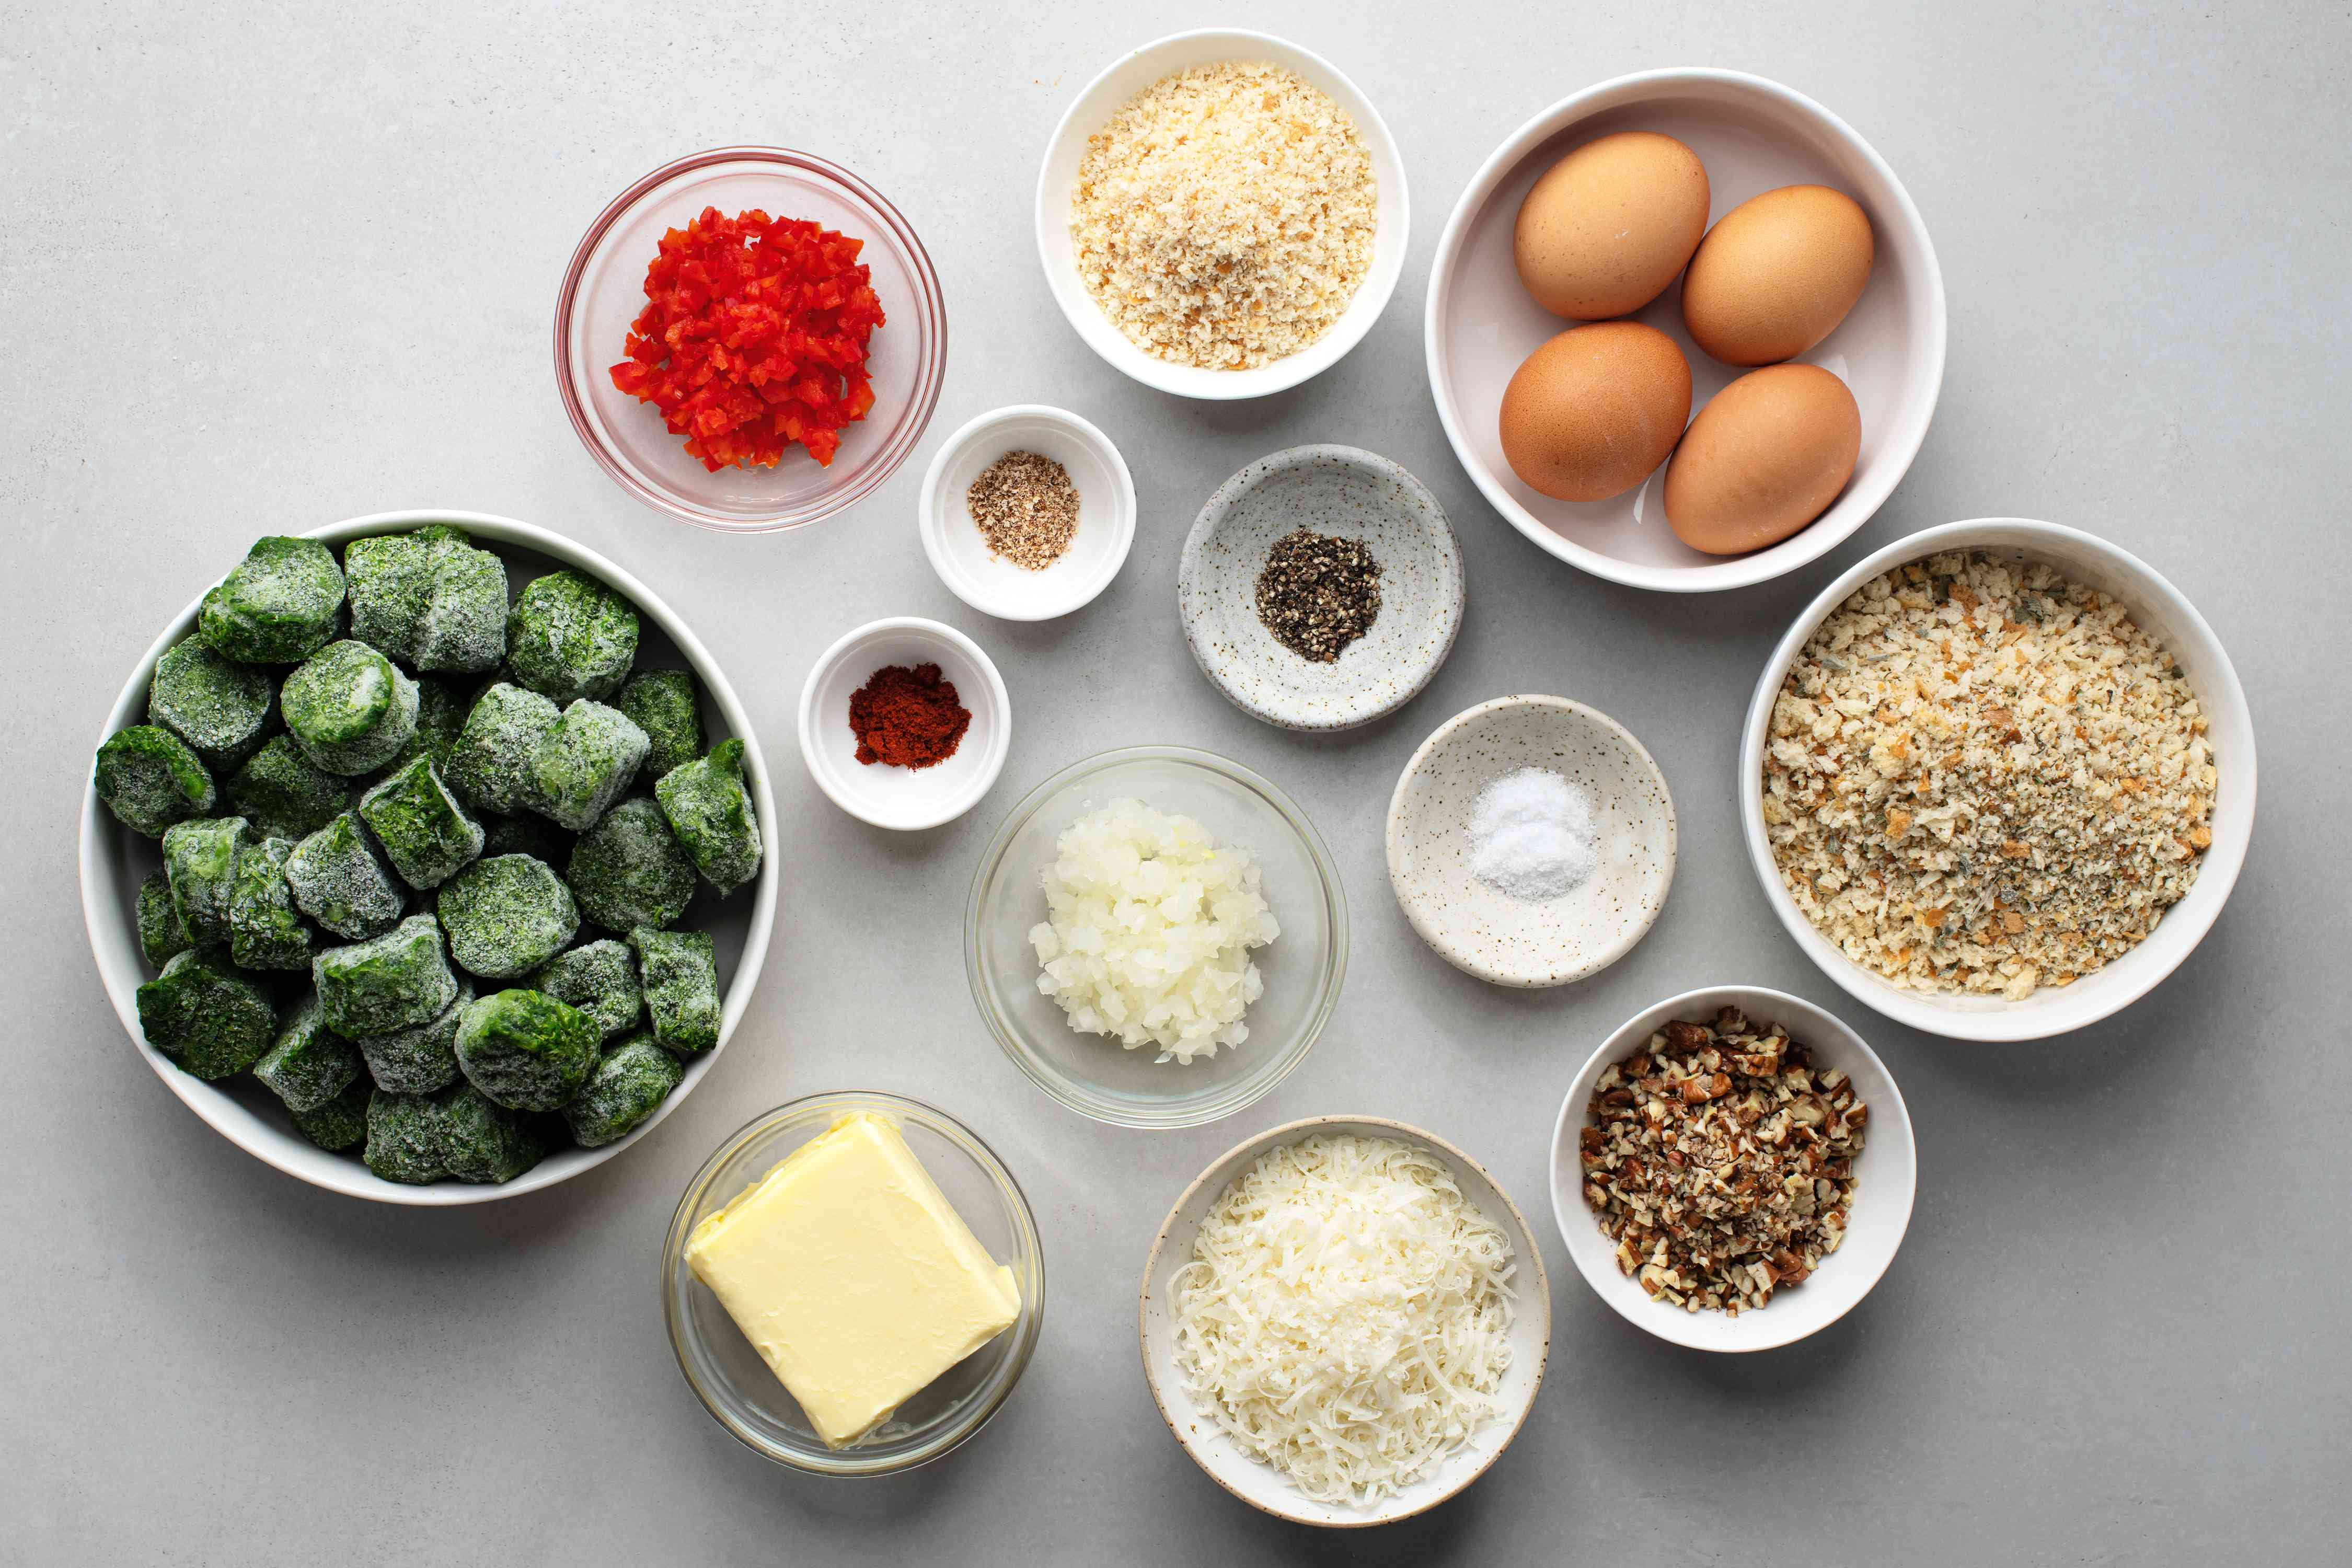 Baked Cheesy Spinach Balls ingredients